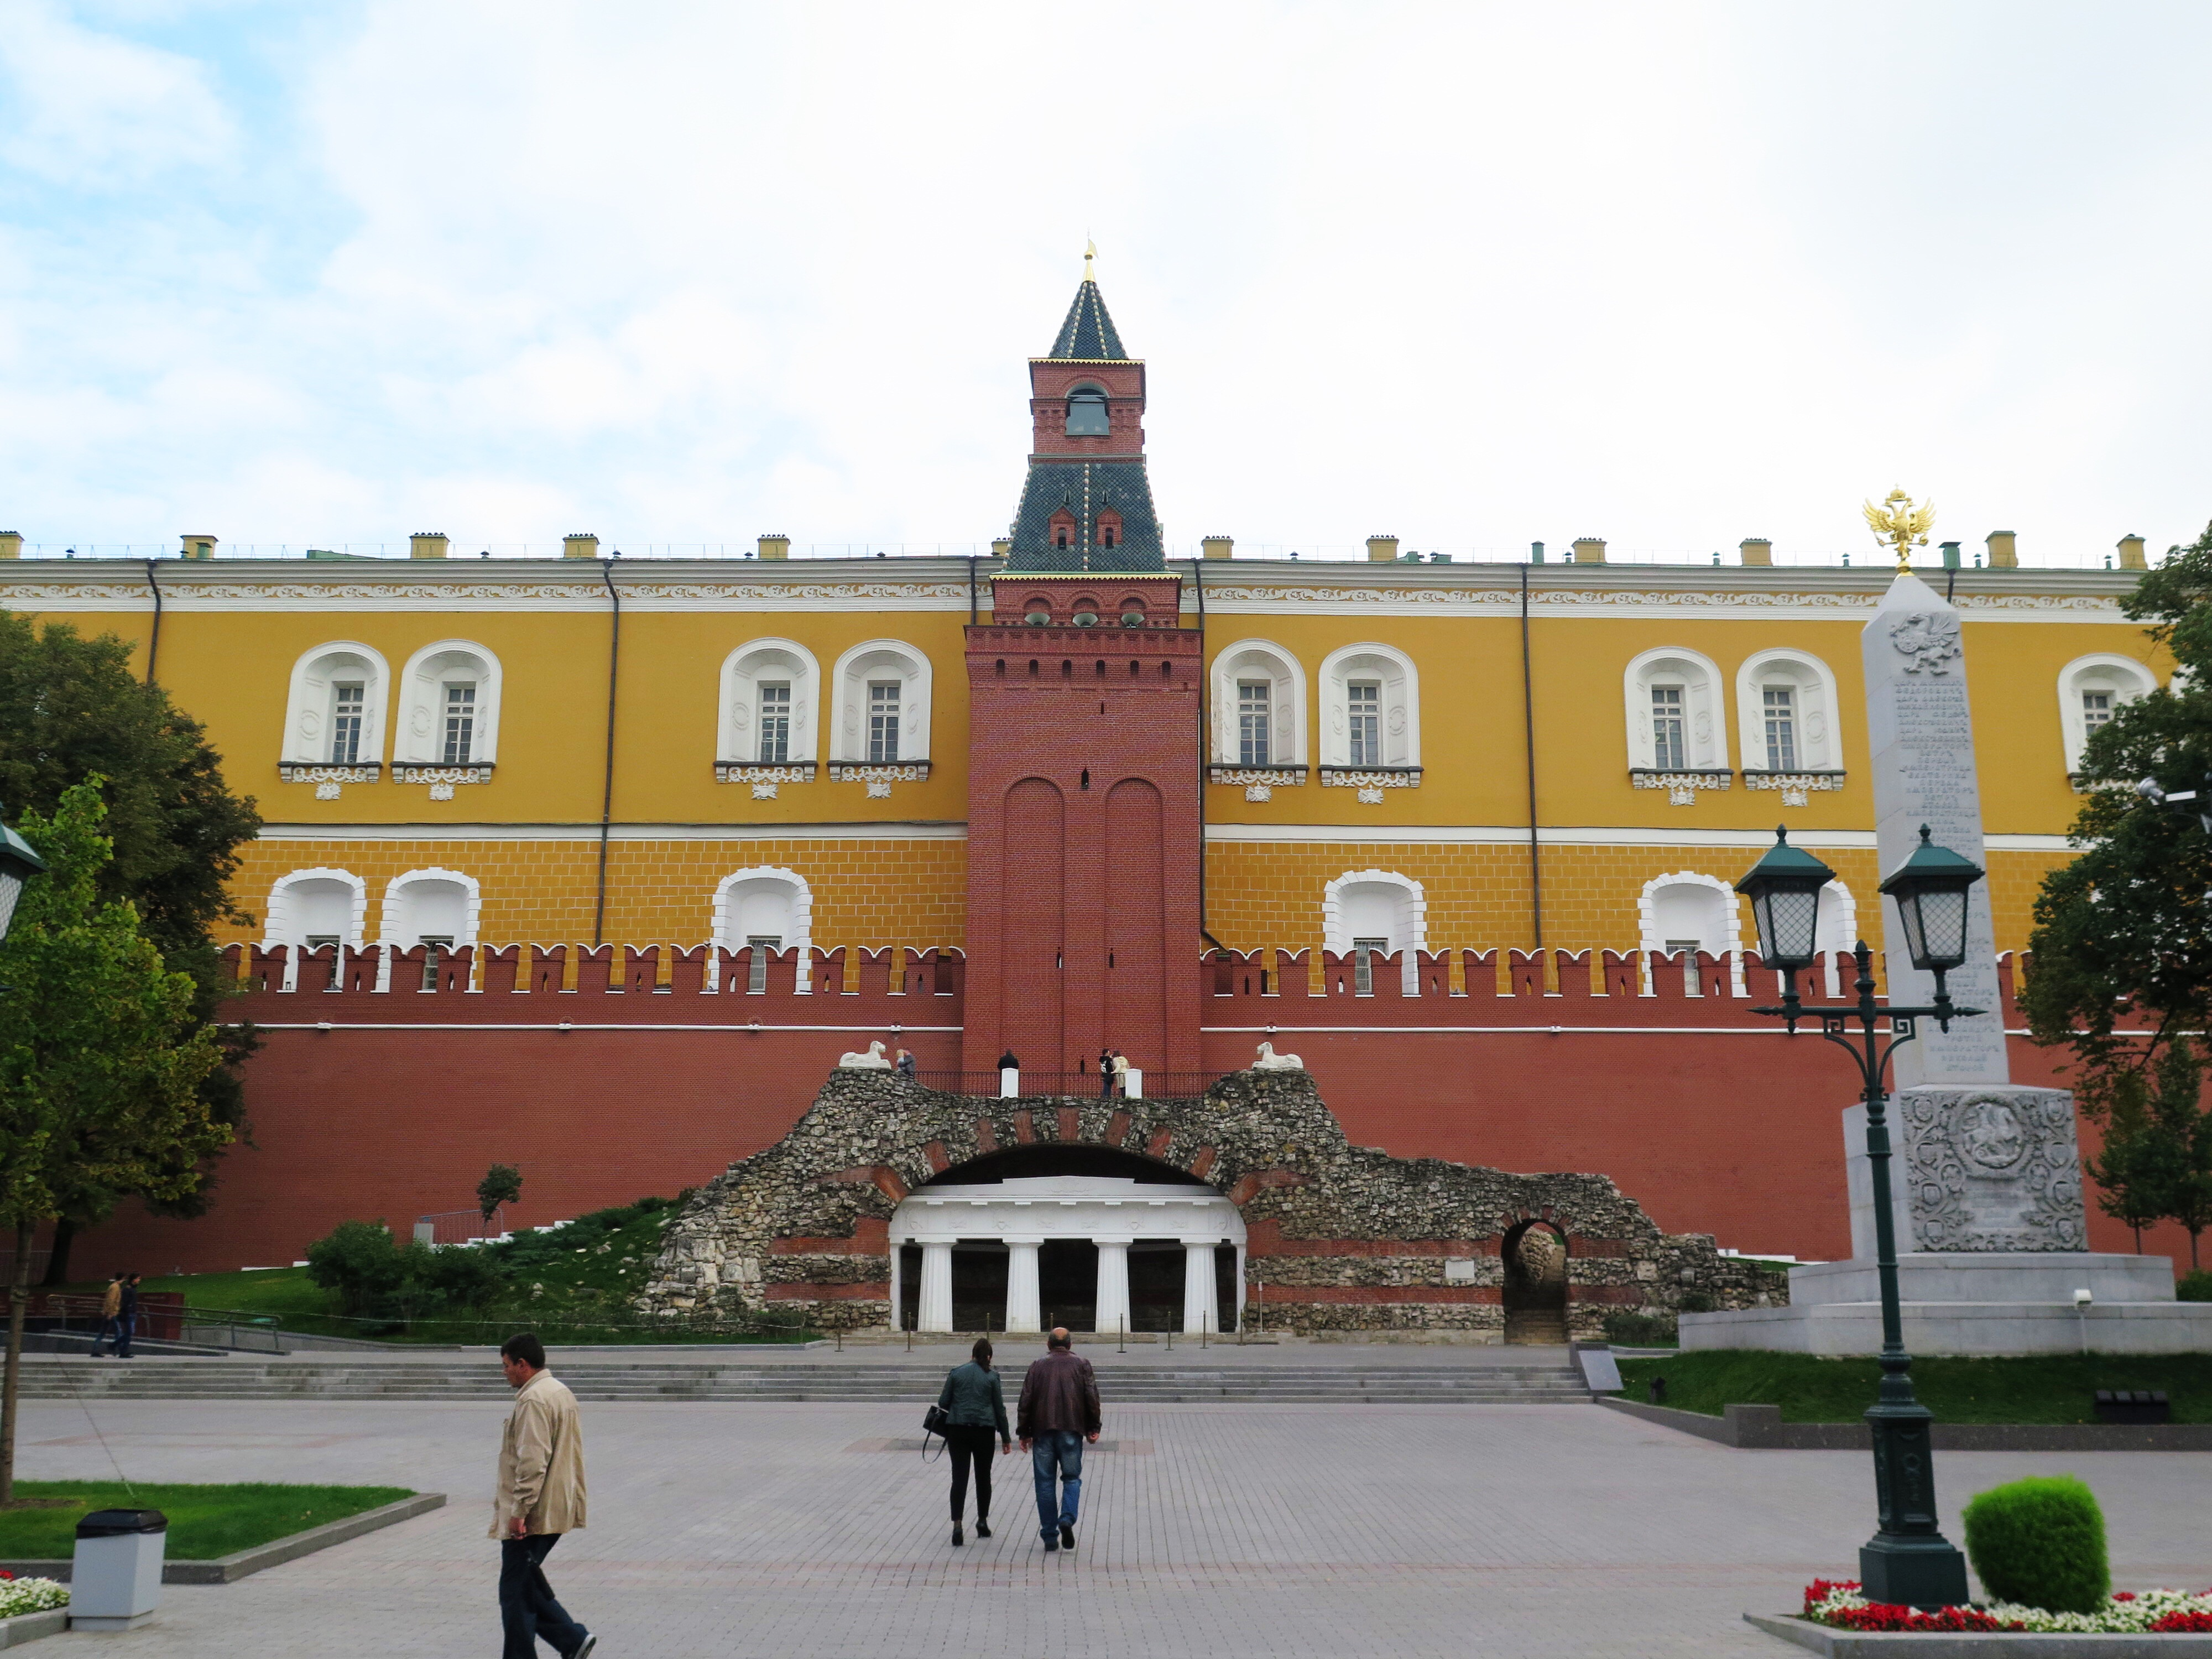 A bit of the original wall of the Kremlin, and the Kremlin in the back.